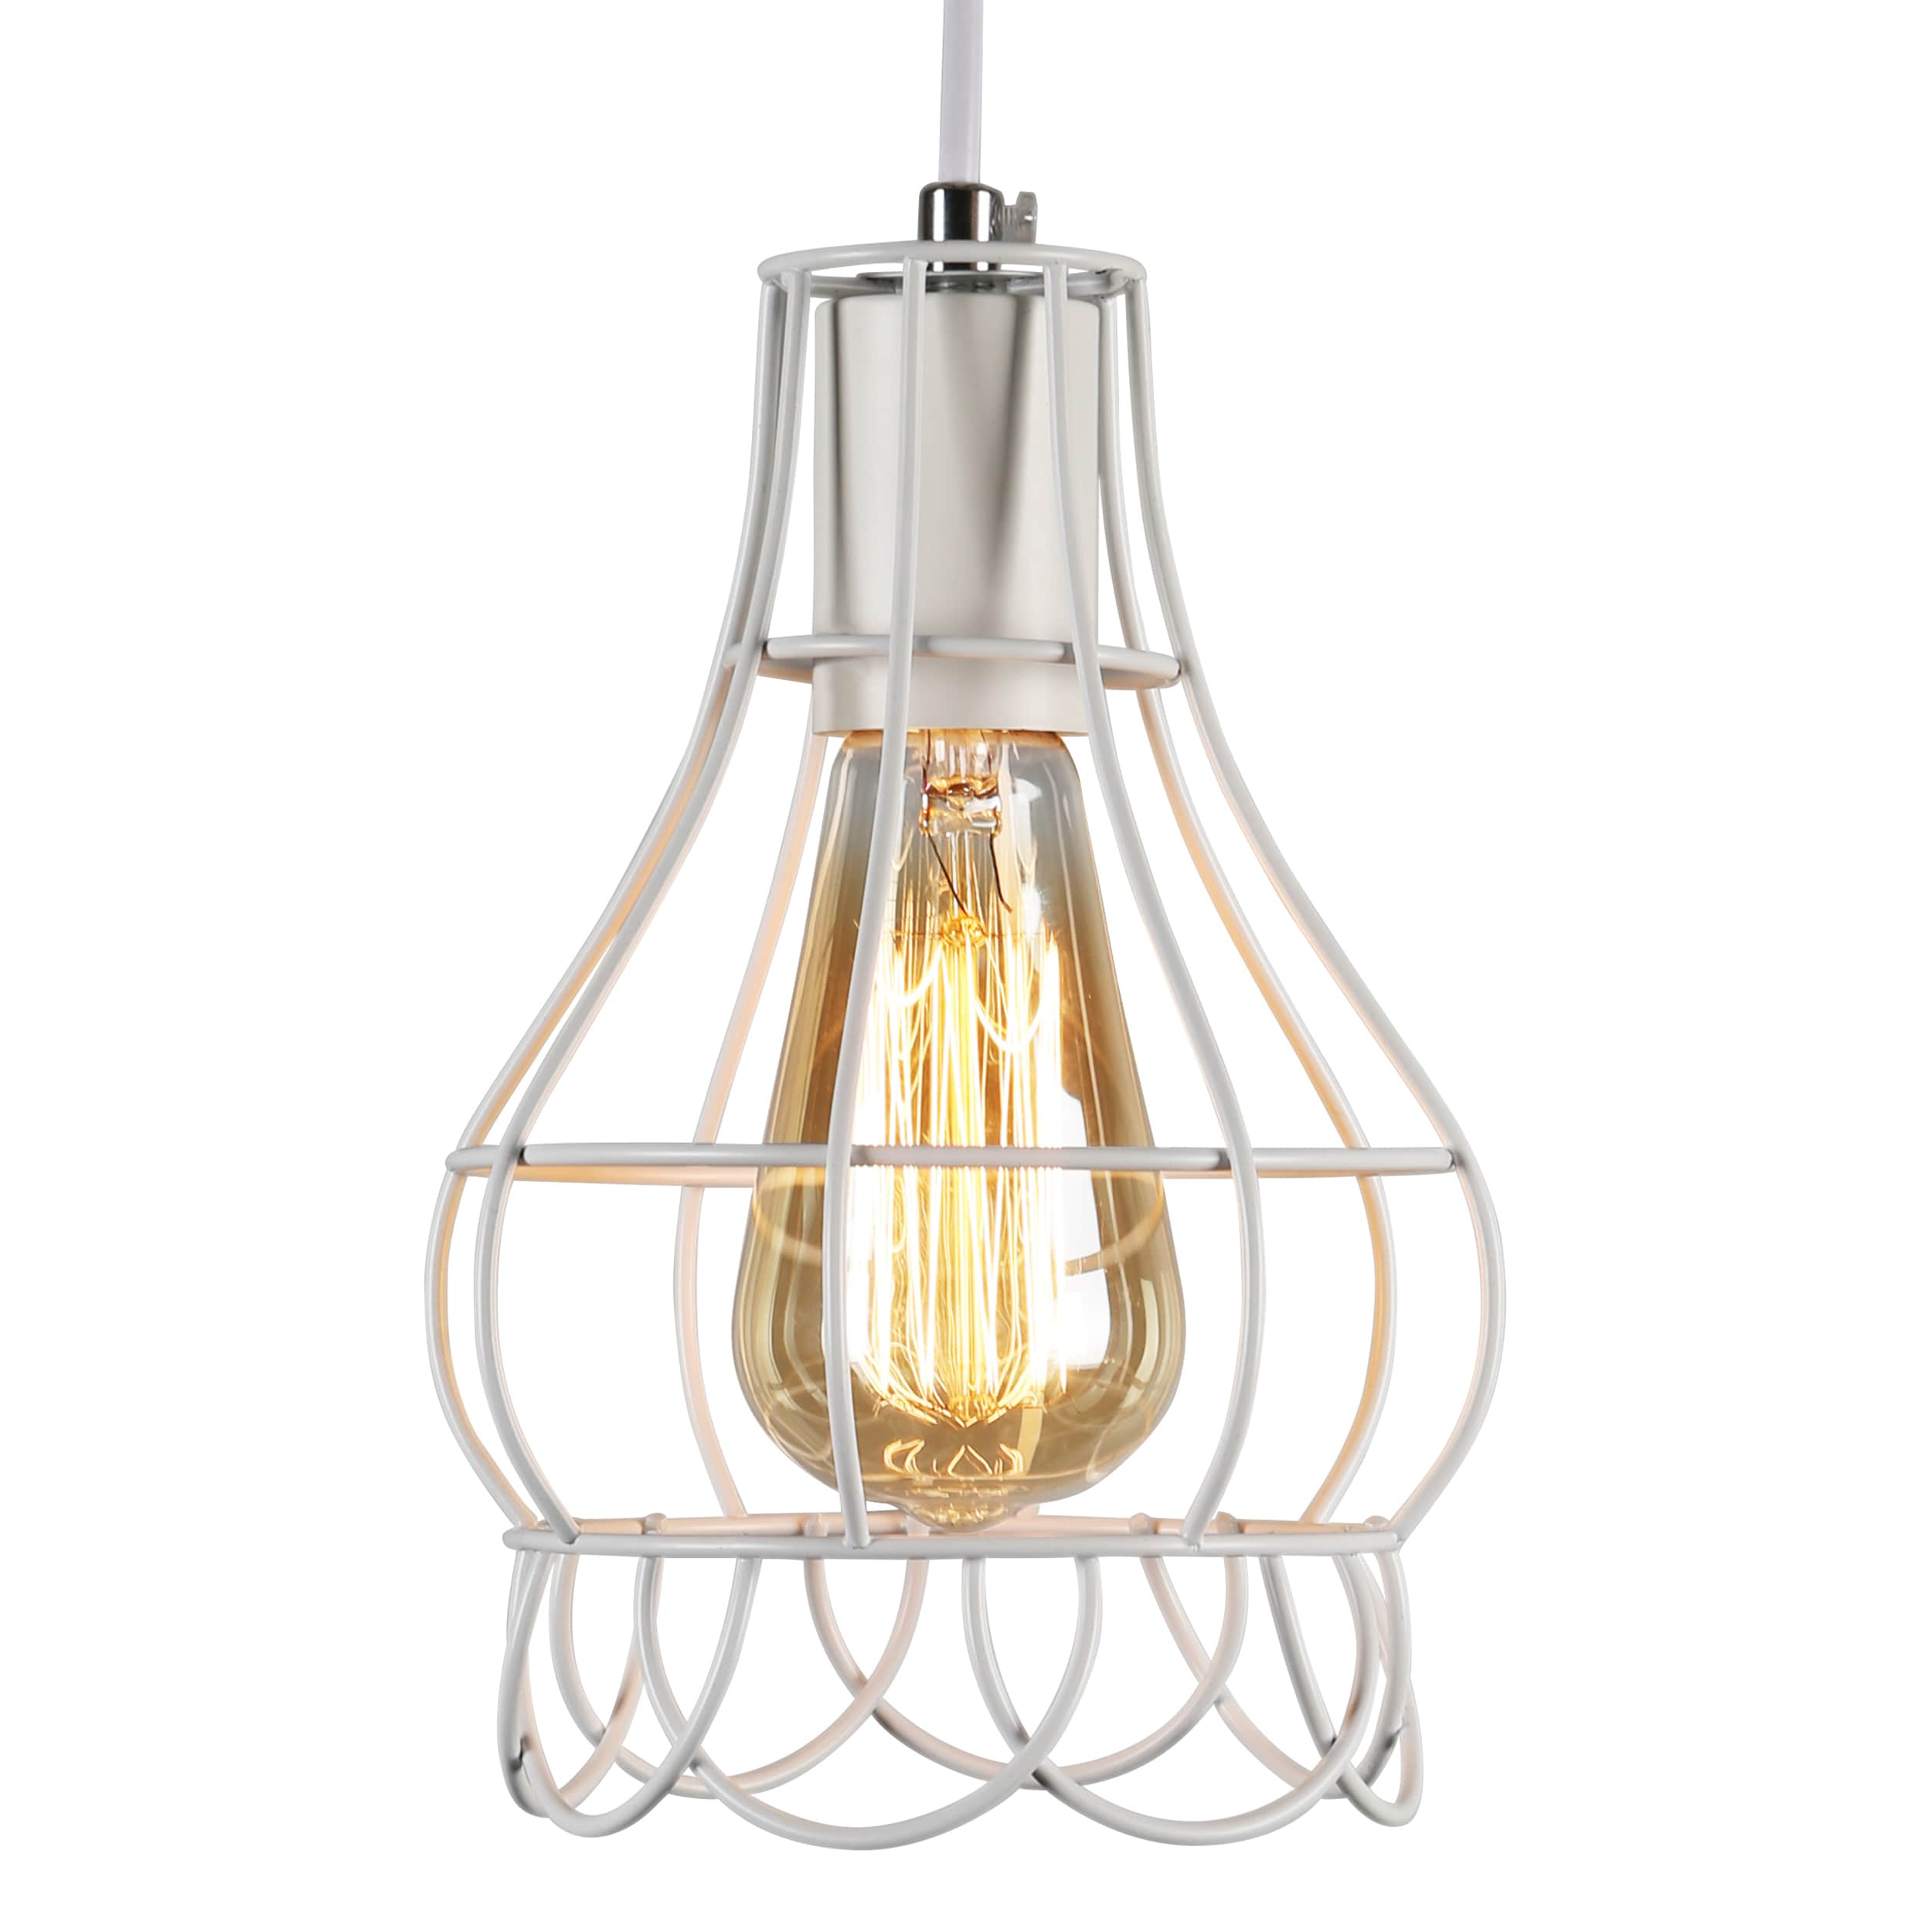 journee lighting. Journee Home \u0027Mattie\u0027 6 In Hard Wired Iron Wire Pendant Light With Included Edison Bulb - Free Shipping Today Overstock 24186468 Lighting D